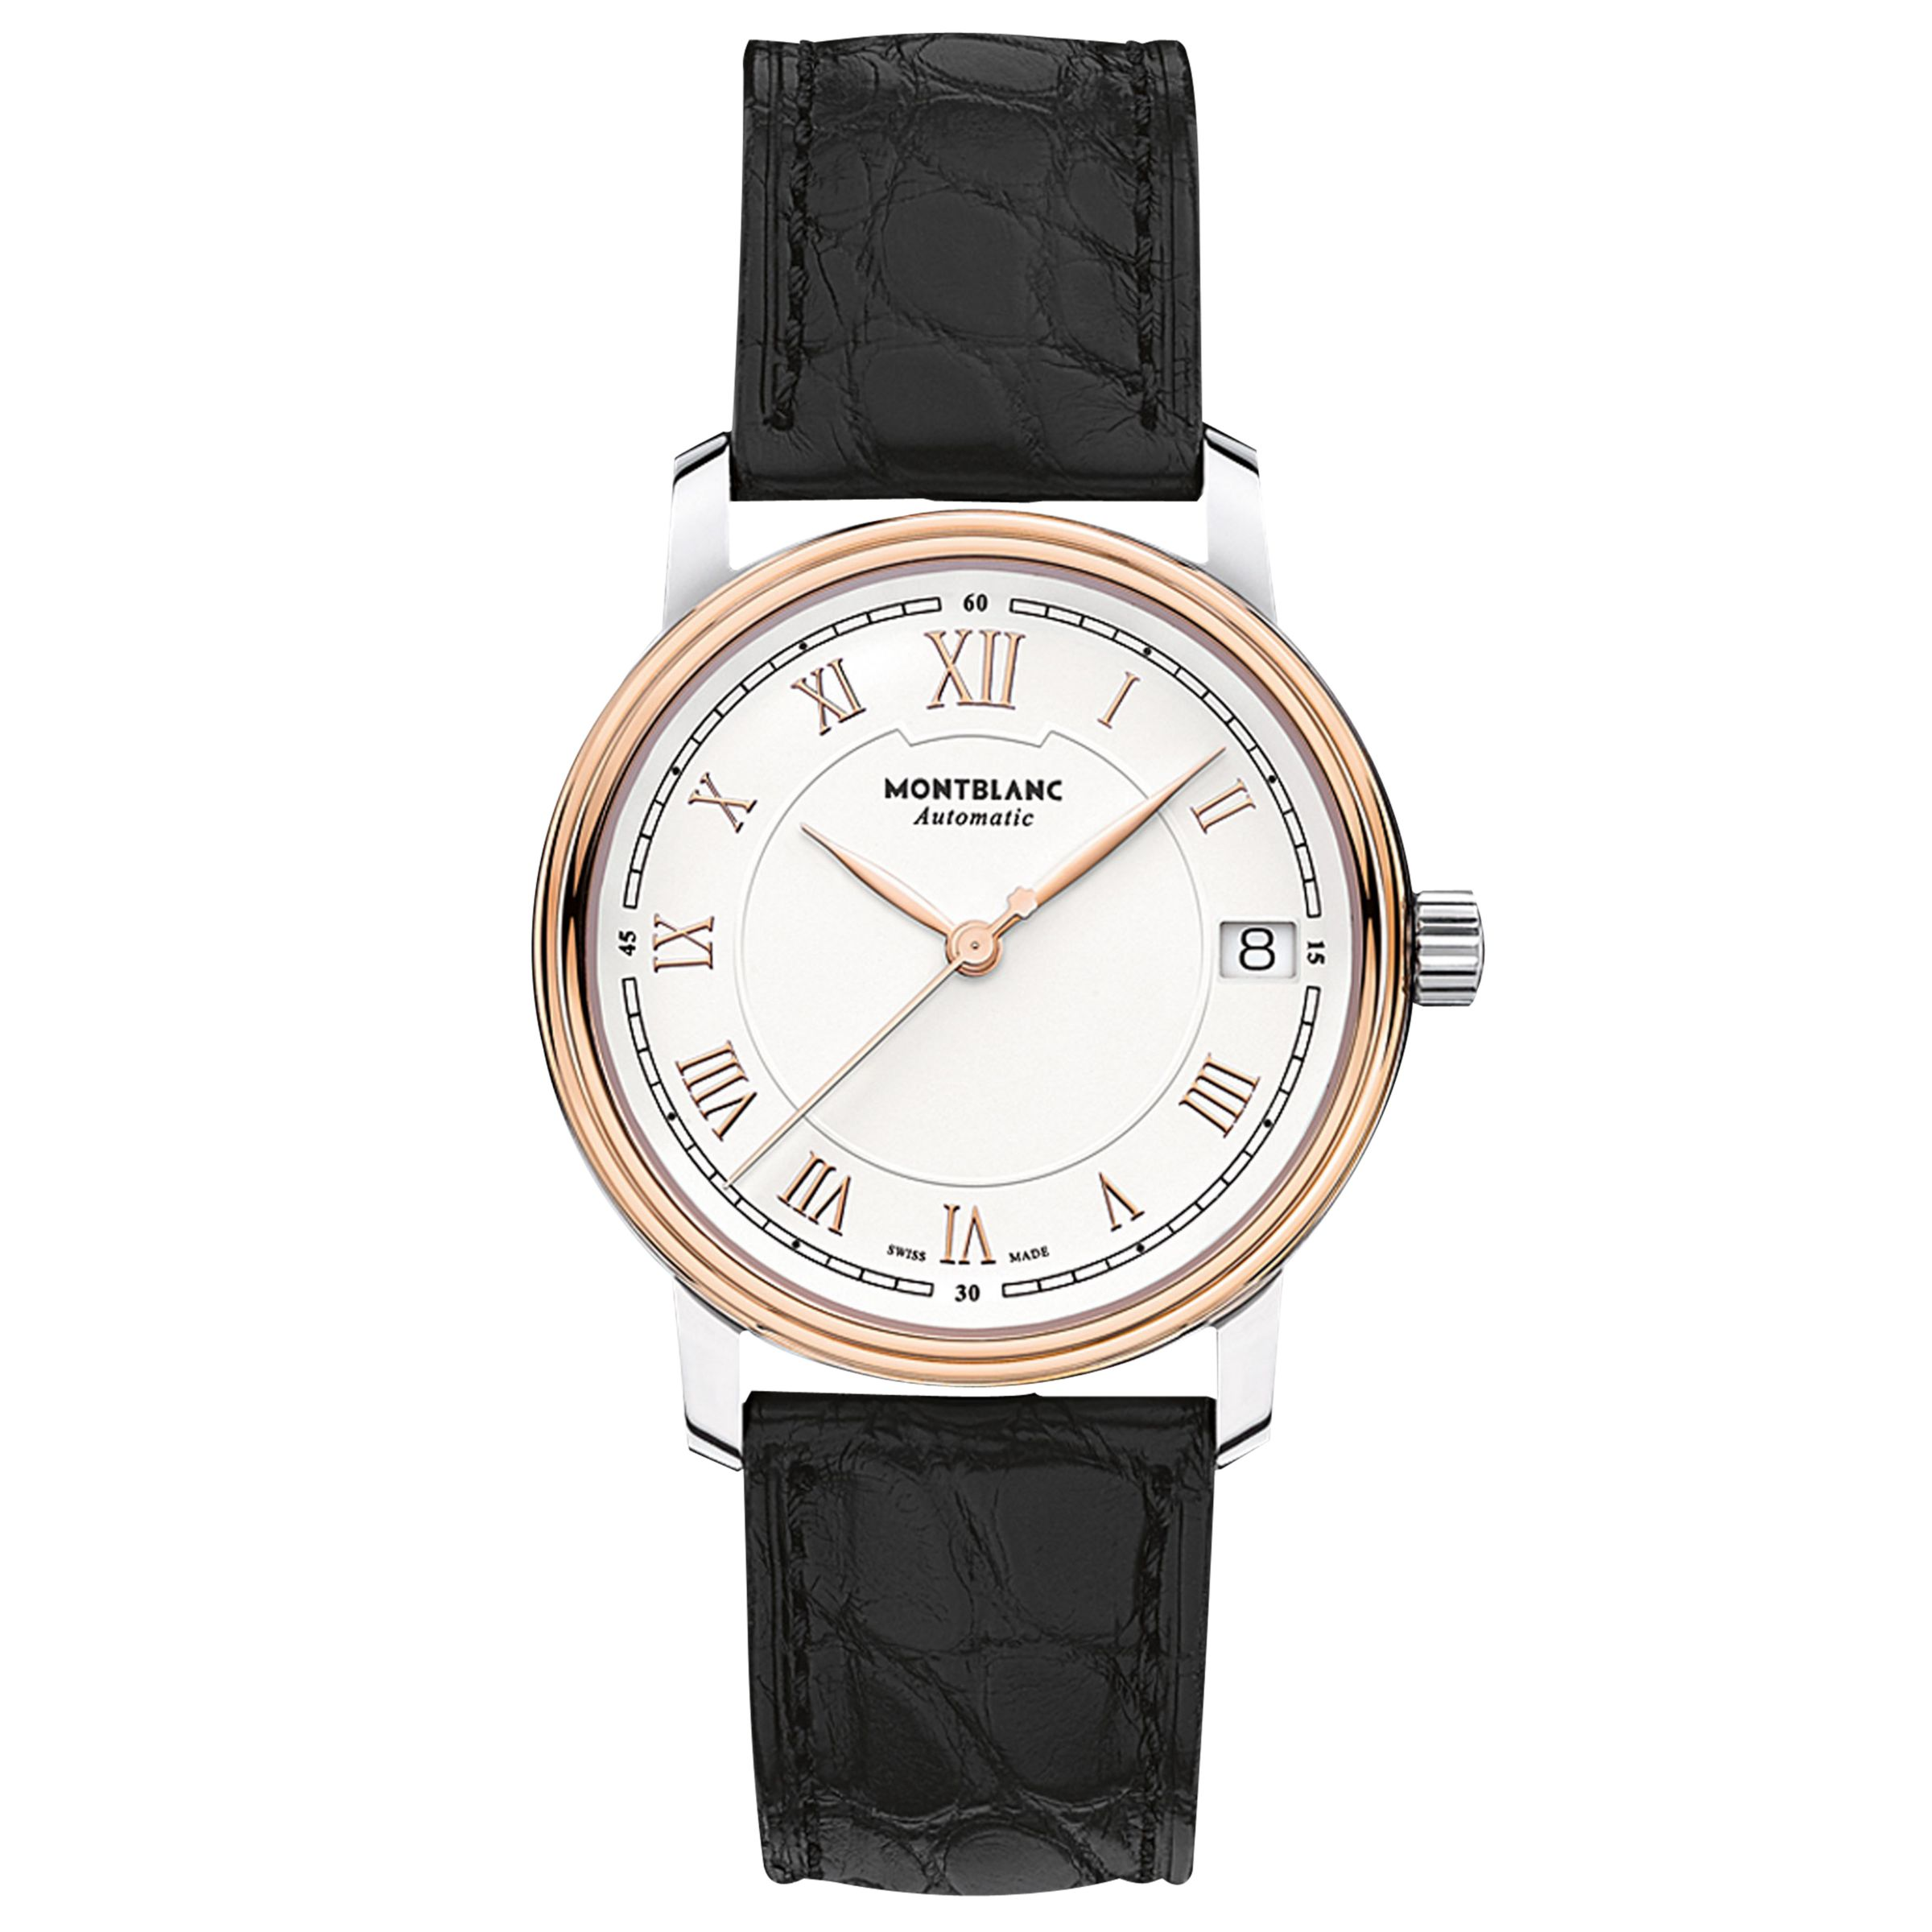 Montblanc Montblanc 114368 Women's Tradition Date Automatic Alligator Leather Strap Watch, Black/White